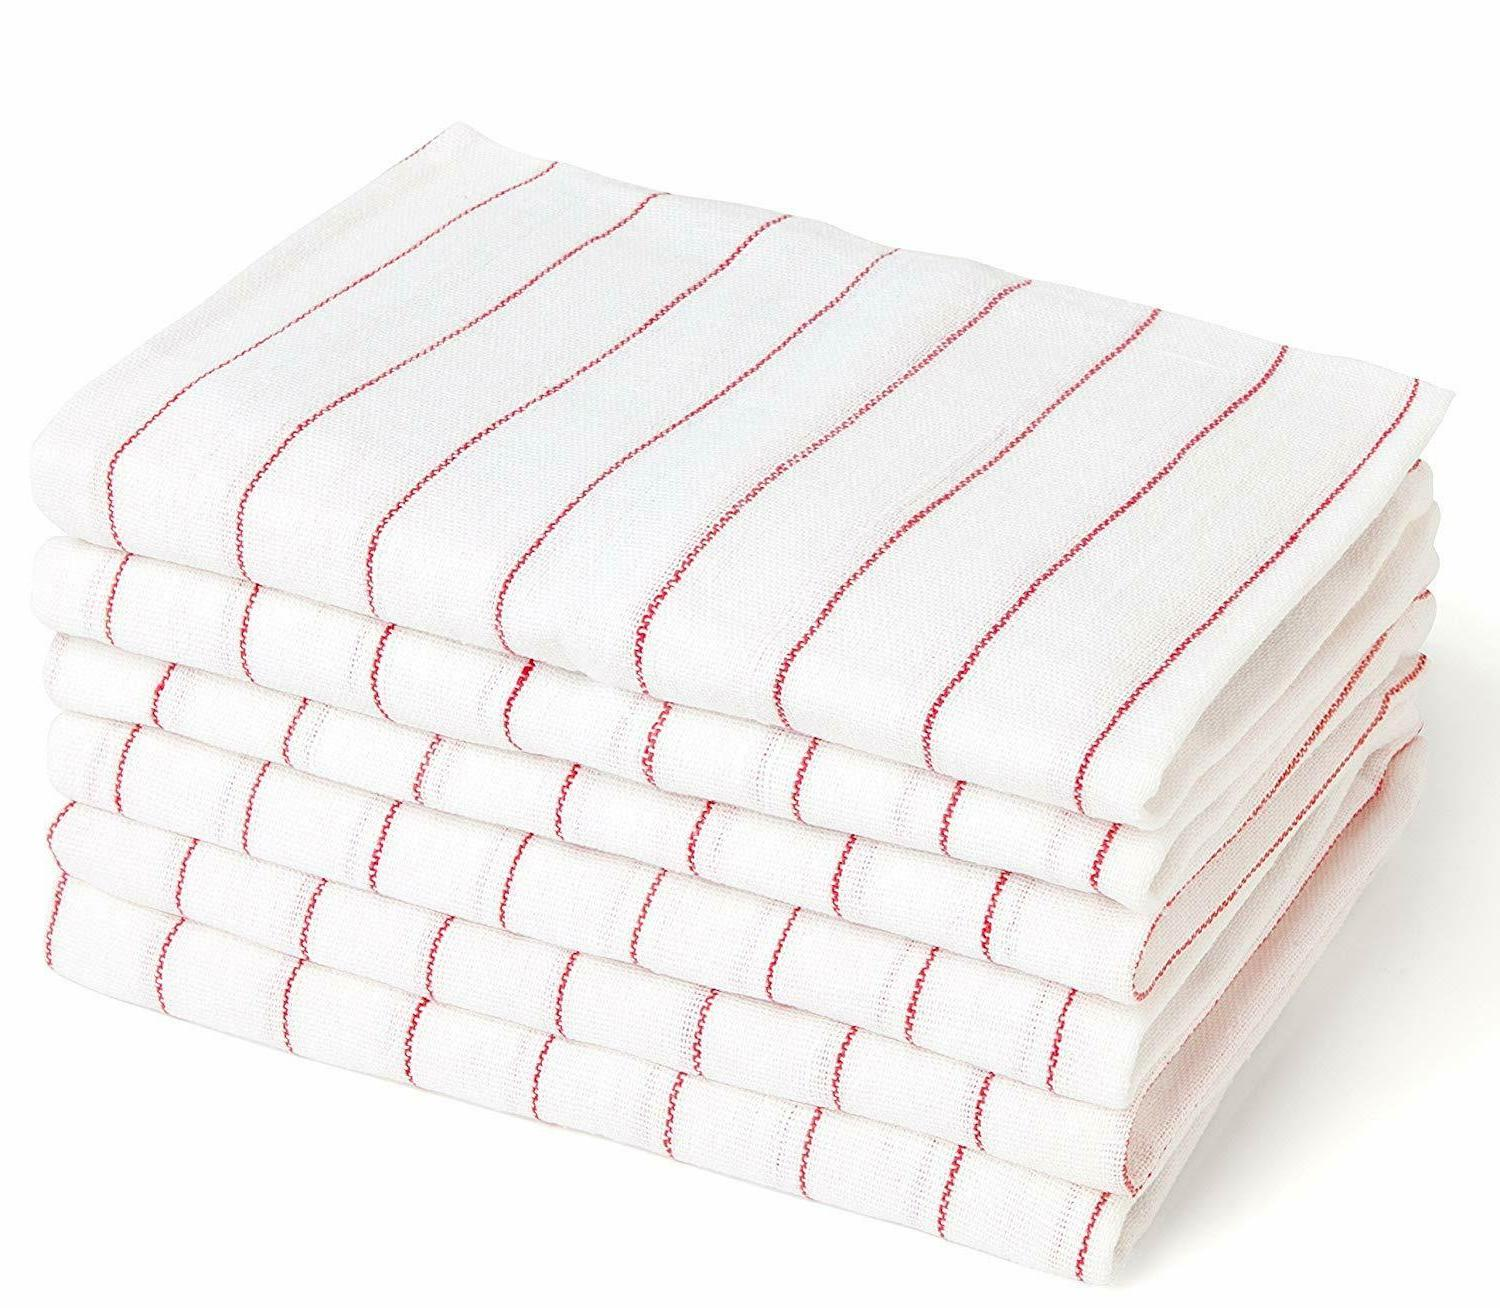 dish towels 24 pcs white cotton stribed